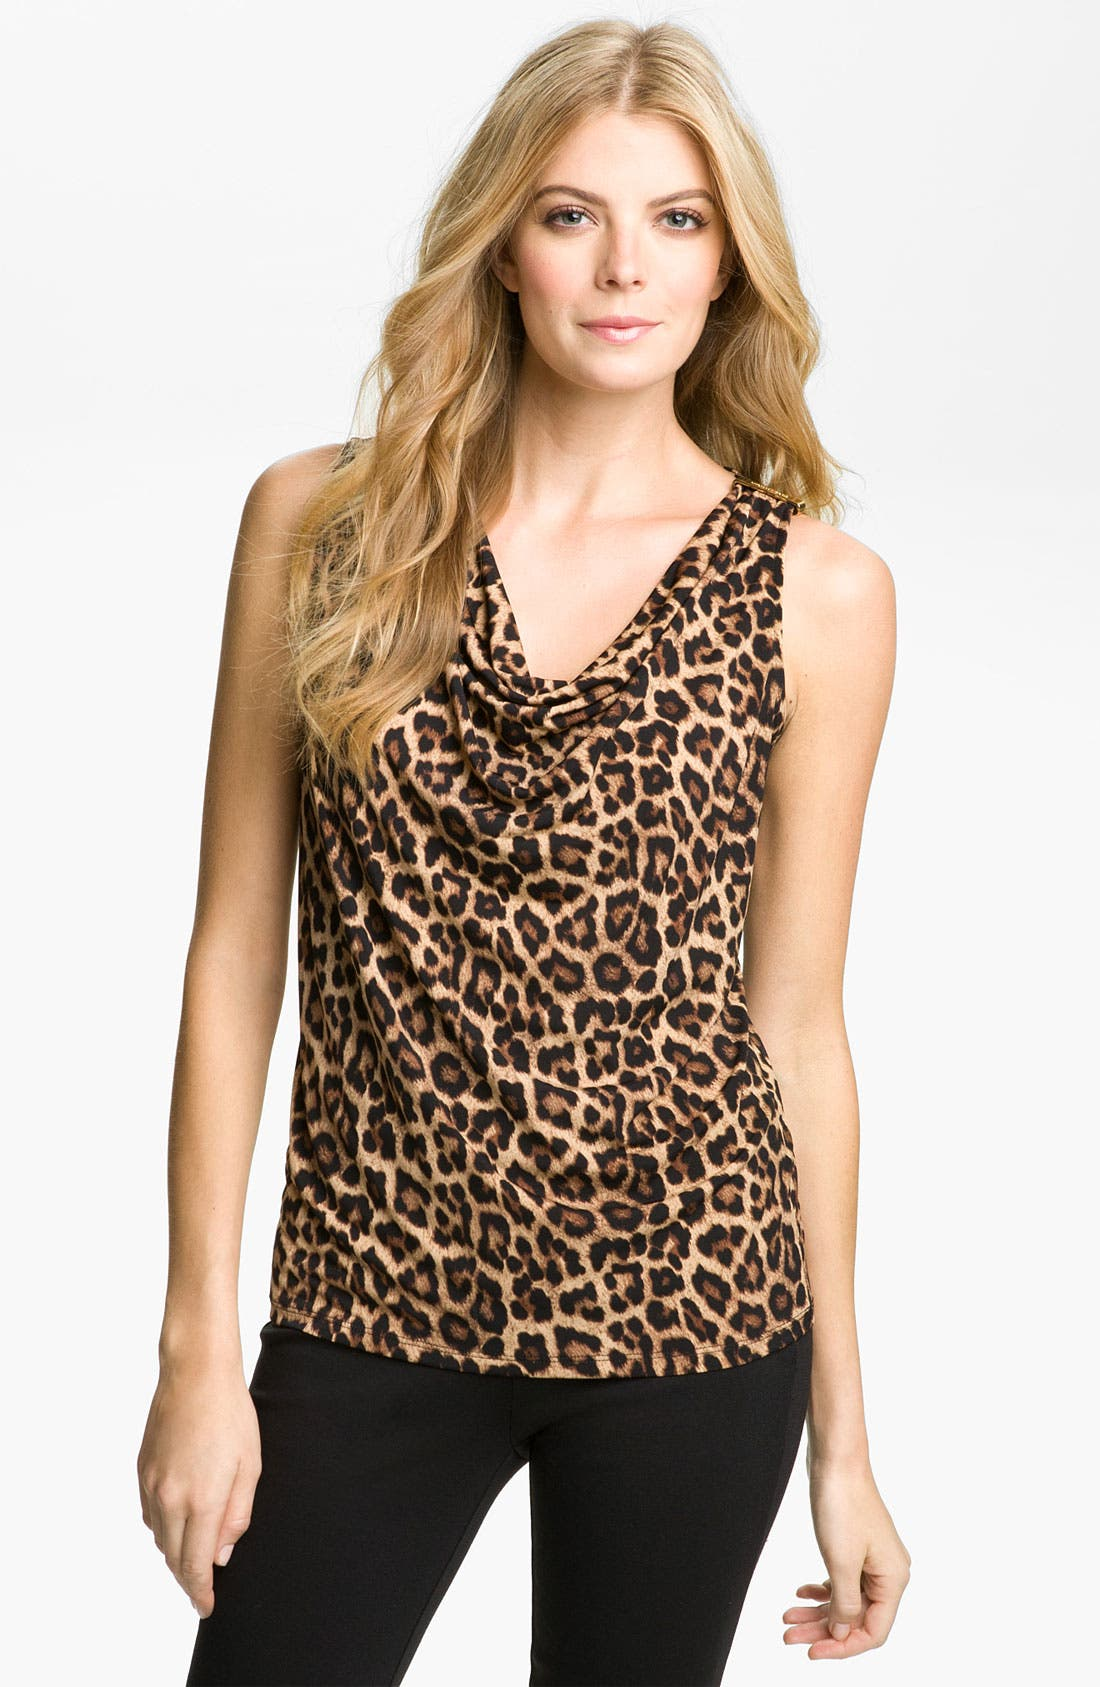 Alternate Image 1 Selected - MICHAEL Michael Kors Jaguar Print Cowl Neck Top (Petite)